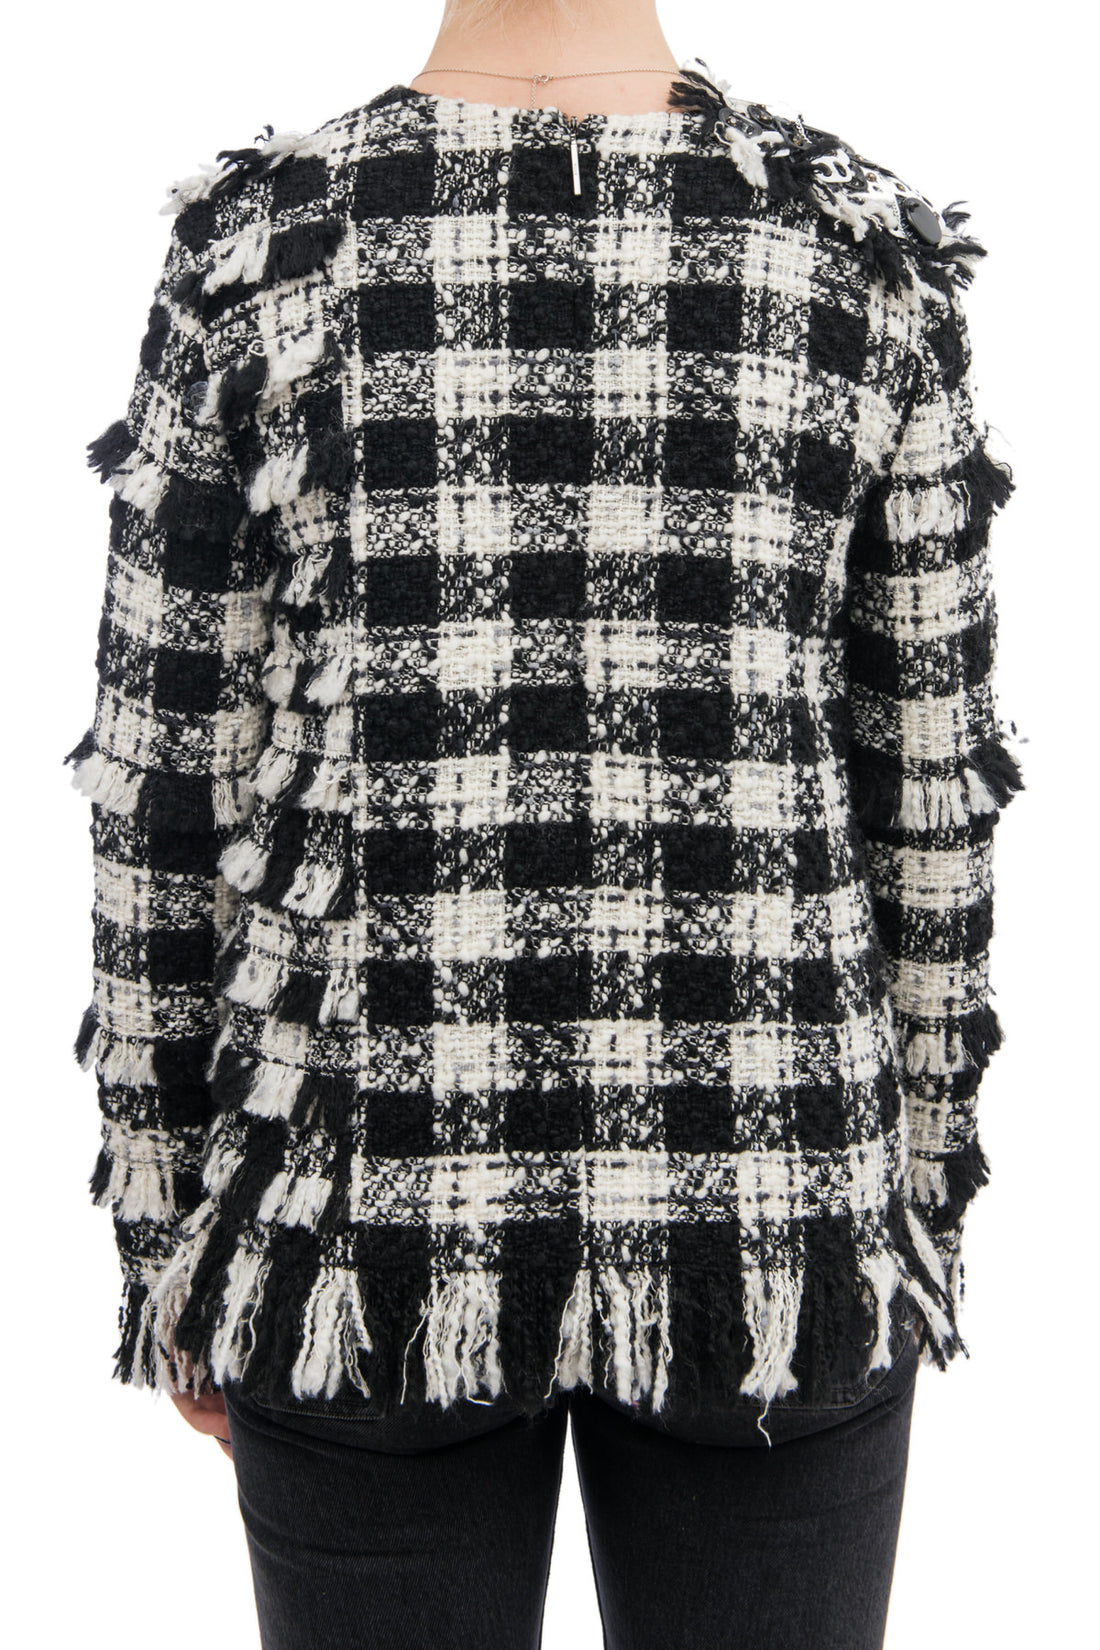 MSGM Pre-Fall 2016 Black and White Tweed Top with Bottle Caps